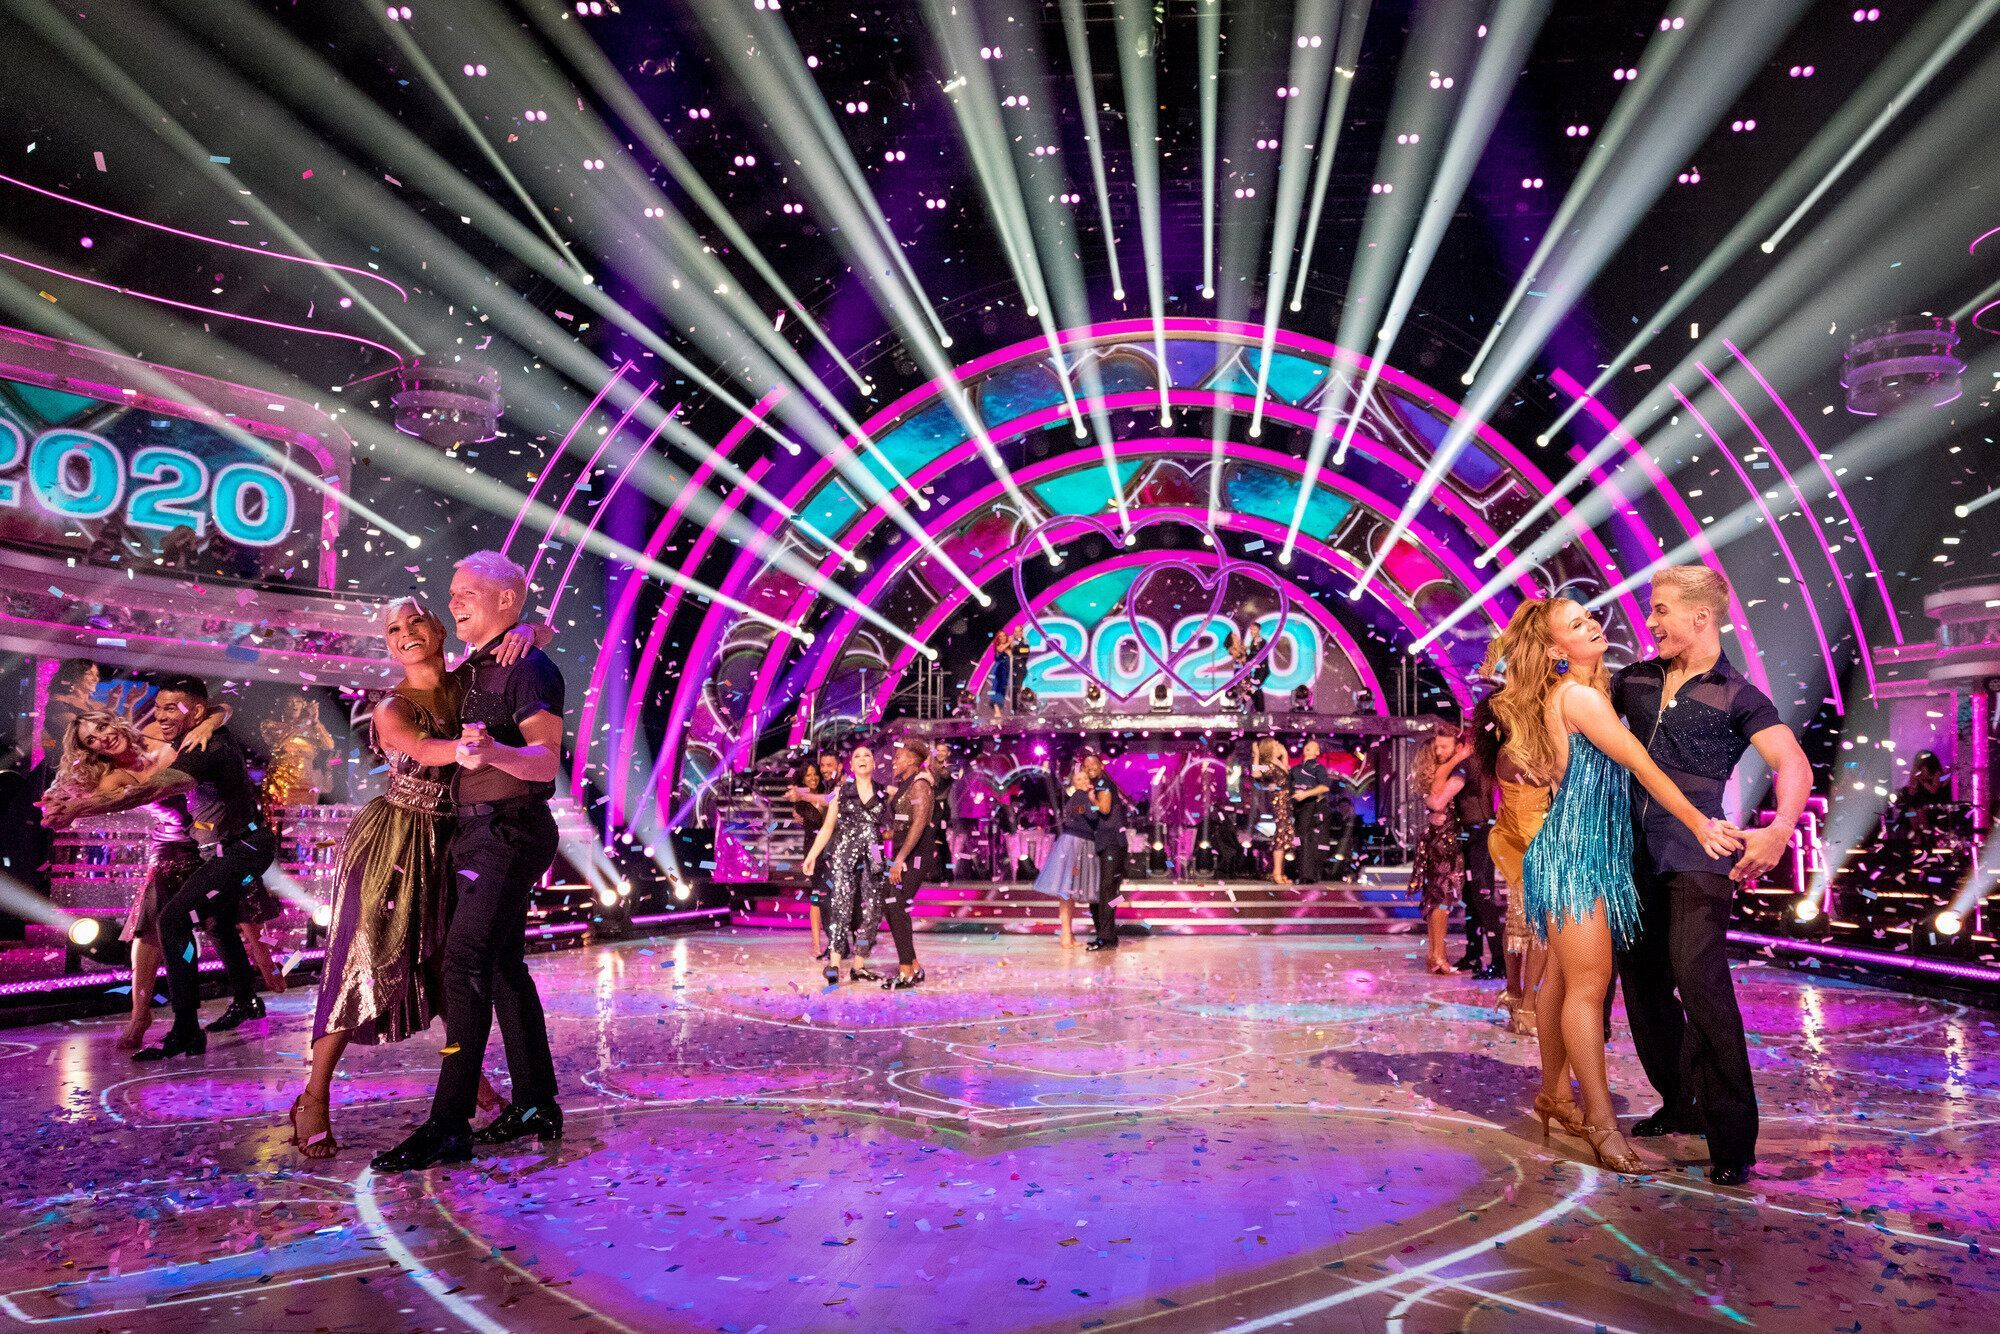 Strictly Come Dancing 2021: From Start Date To New Dancers And Judges, Here's What You Need To Know